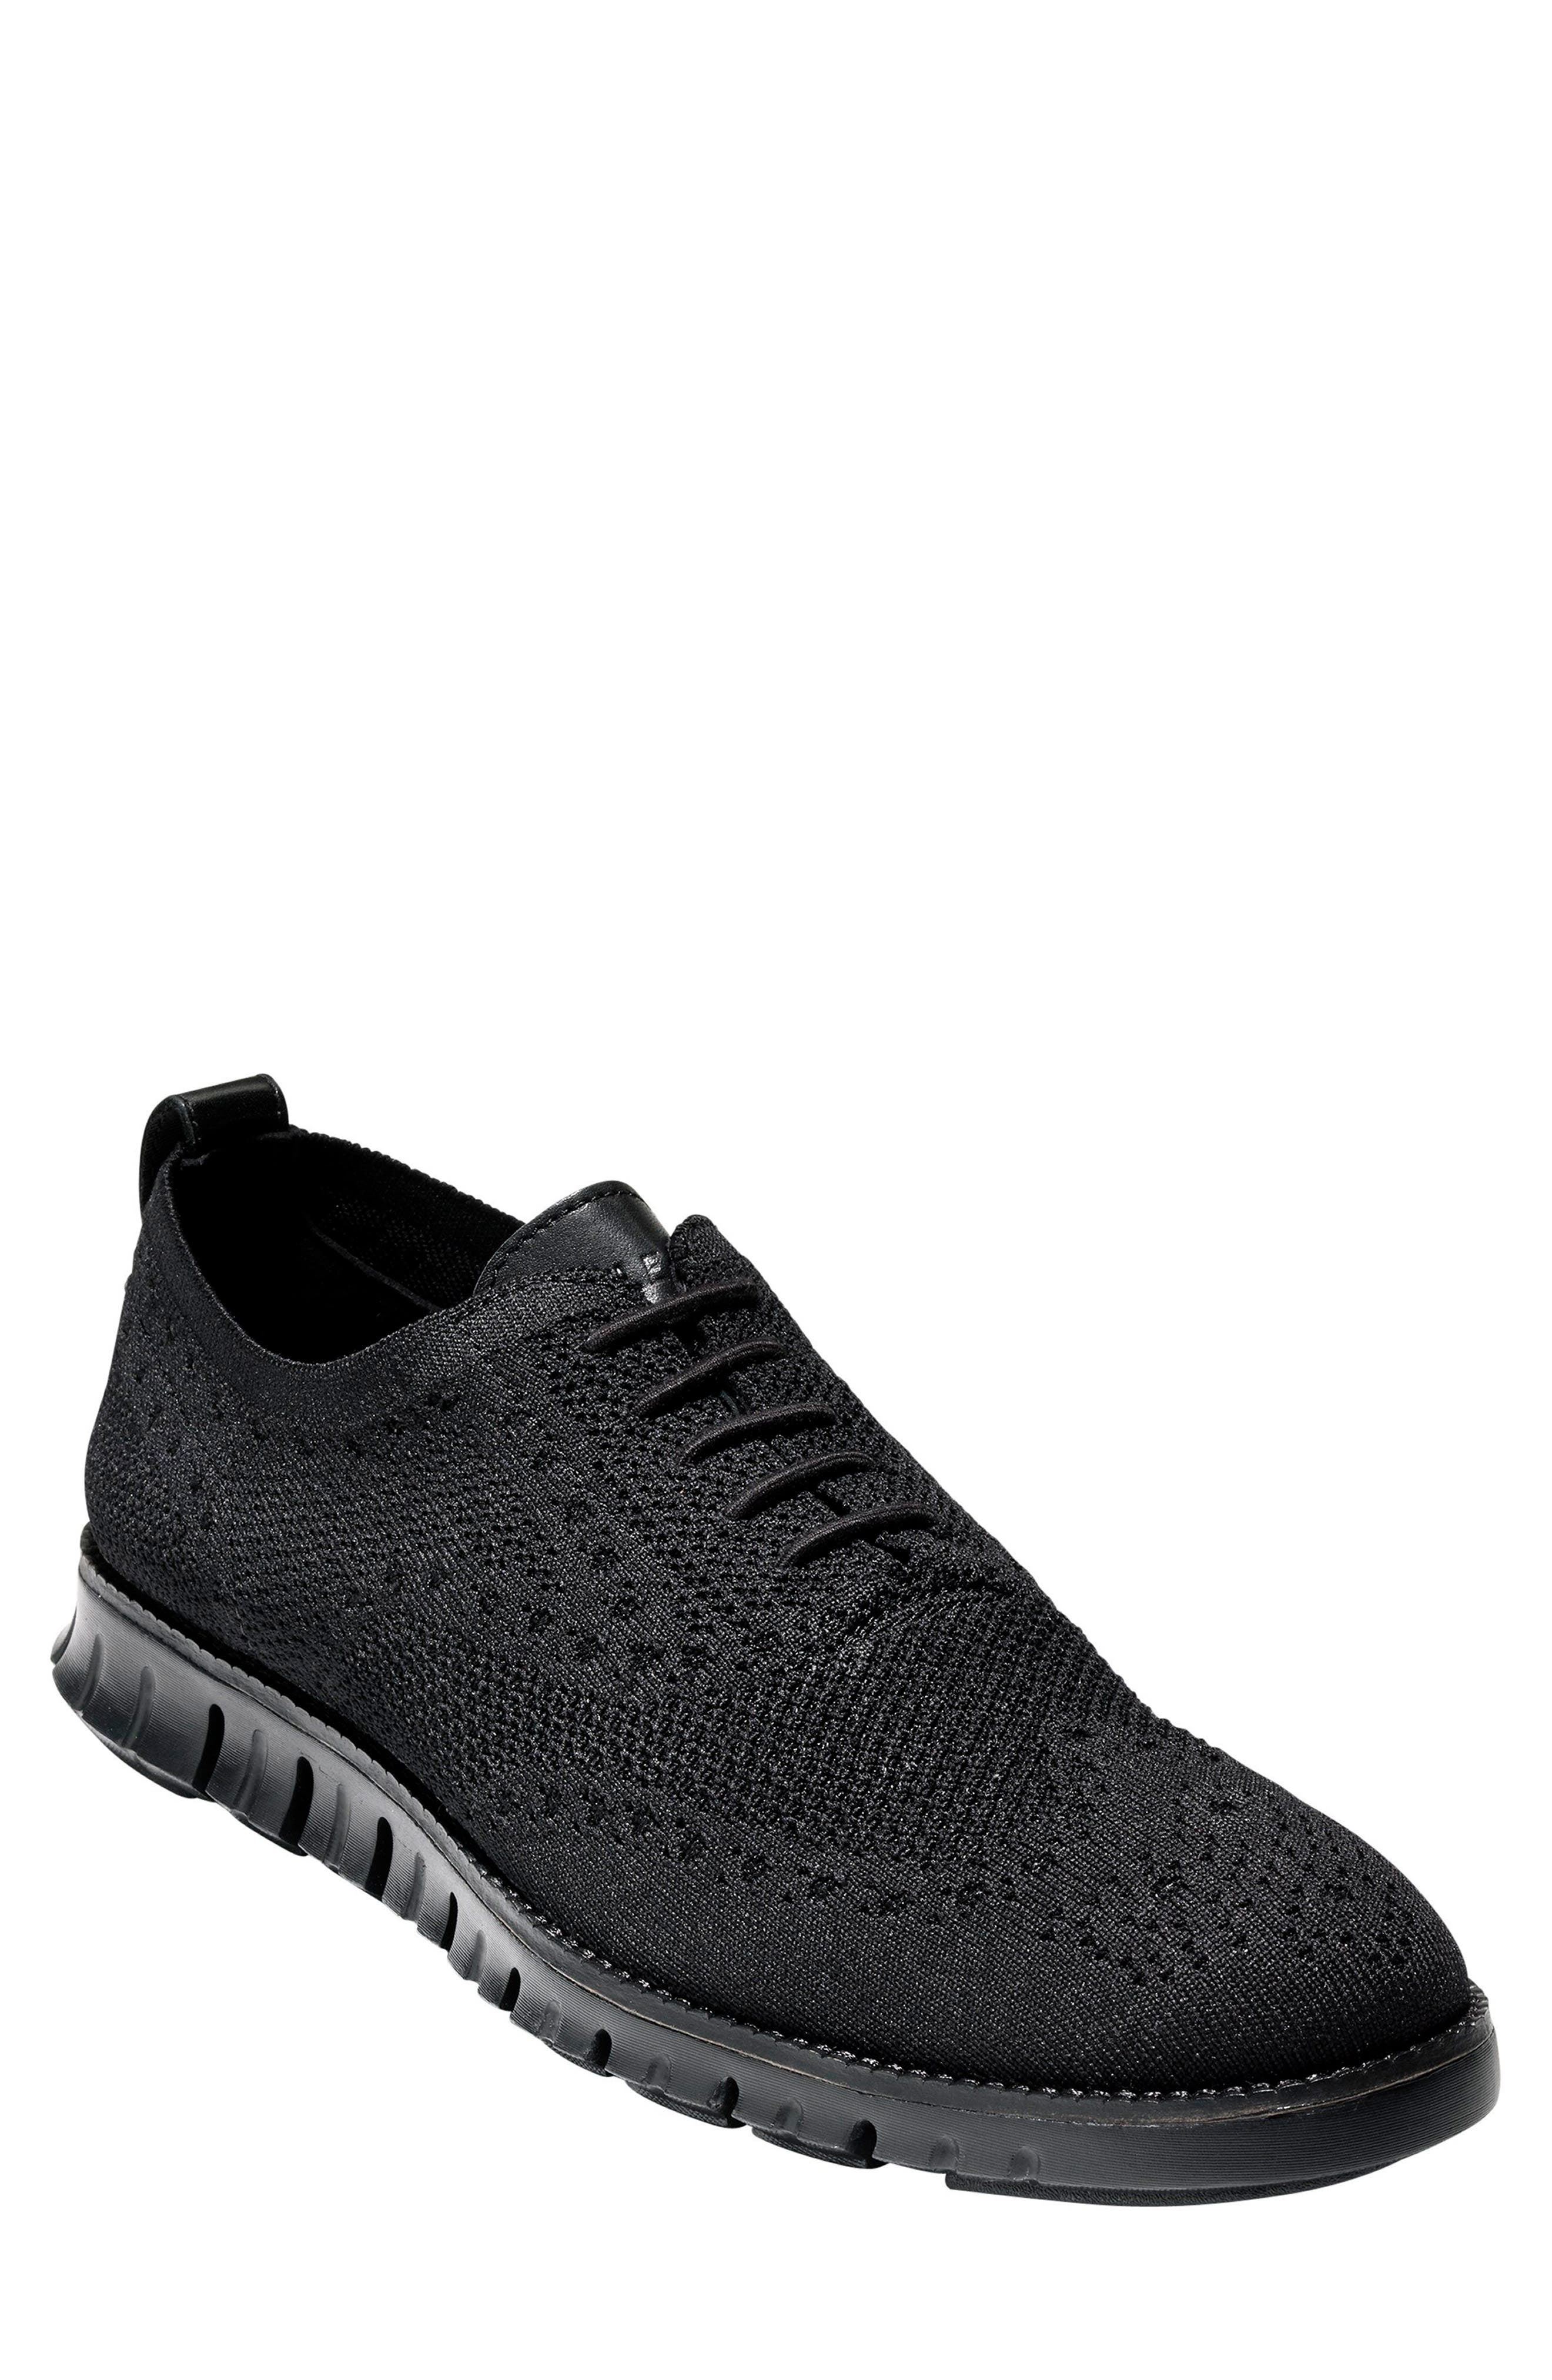 ZeroGrand Stitch-lite Wingtip Oxford,                             Main thumbnail 1, color,                             Black